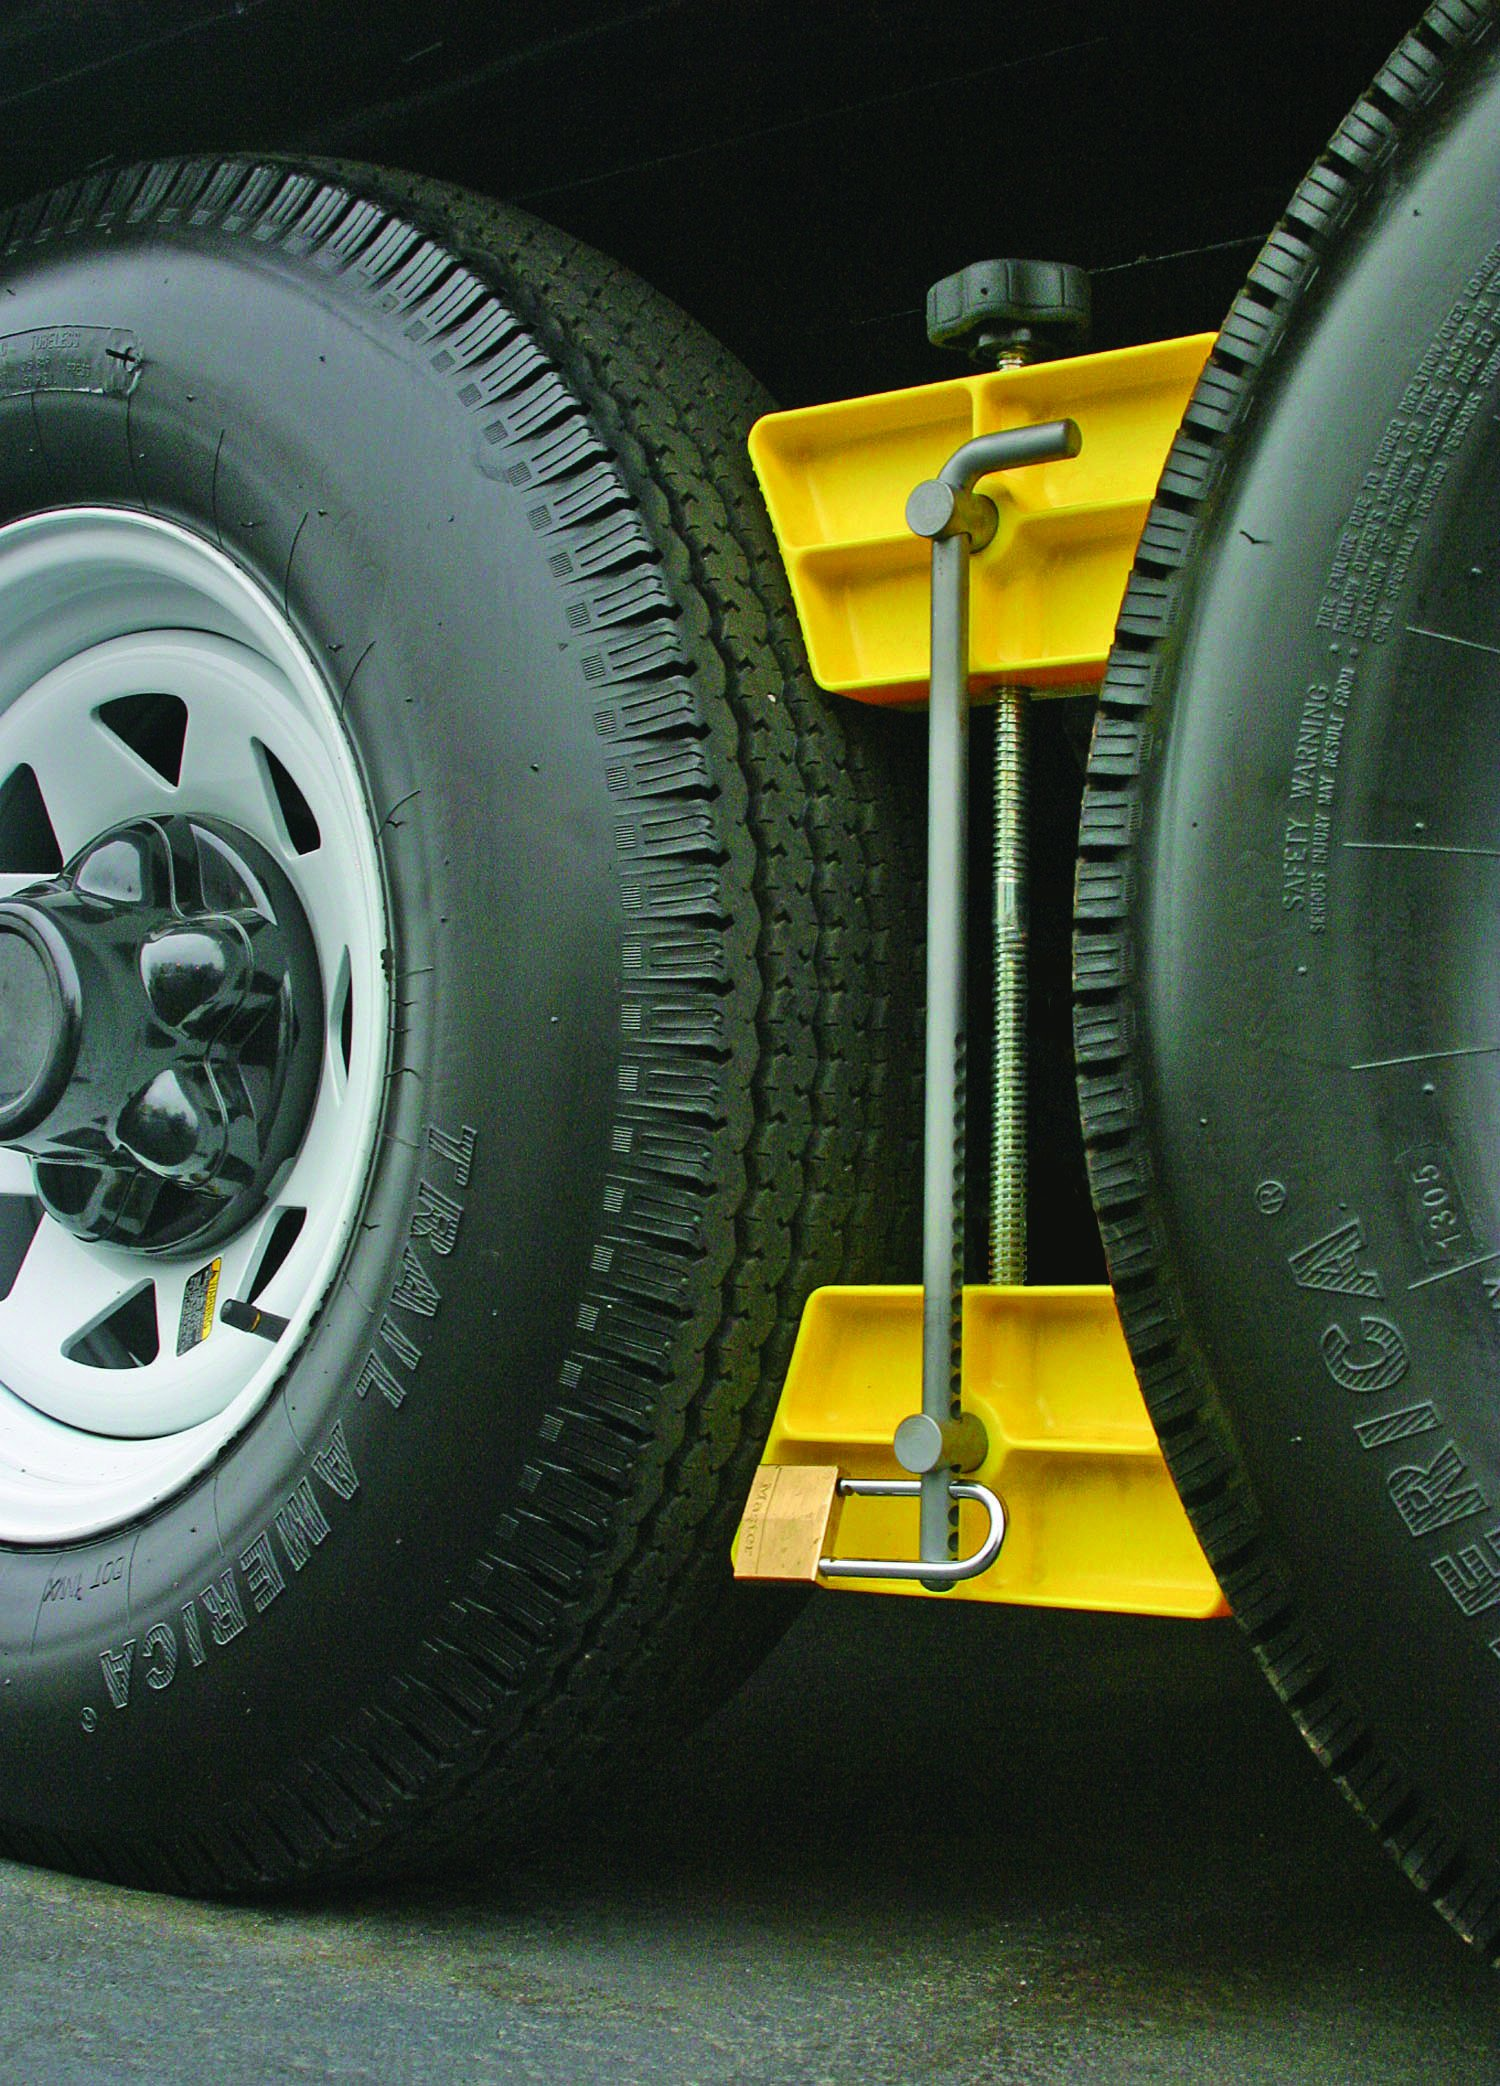 Camco RV Wheel Stop with Padlock- Stabilizes Your Trailer by Securing Tandem Tires to Prevent Movement While Parked- 26'' to 30'' Tires- Large (44642)